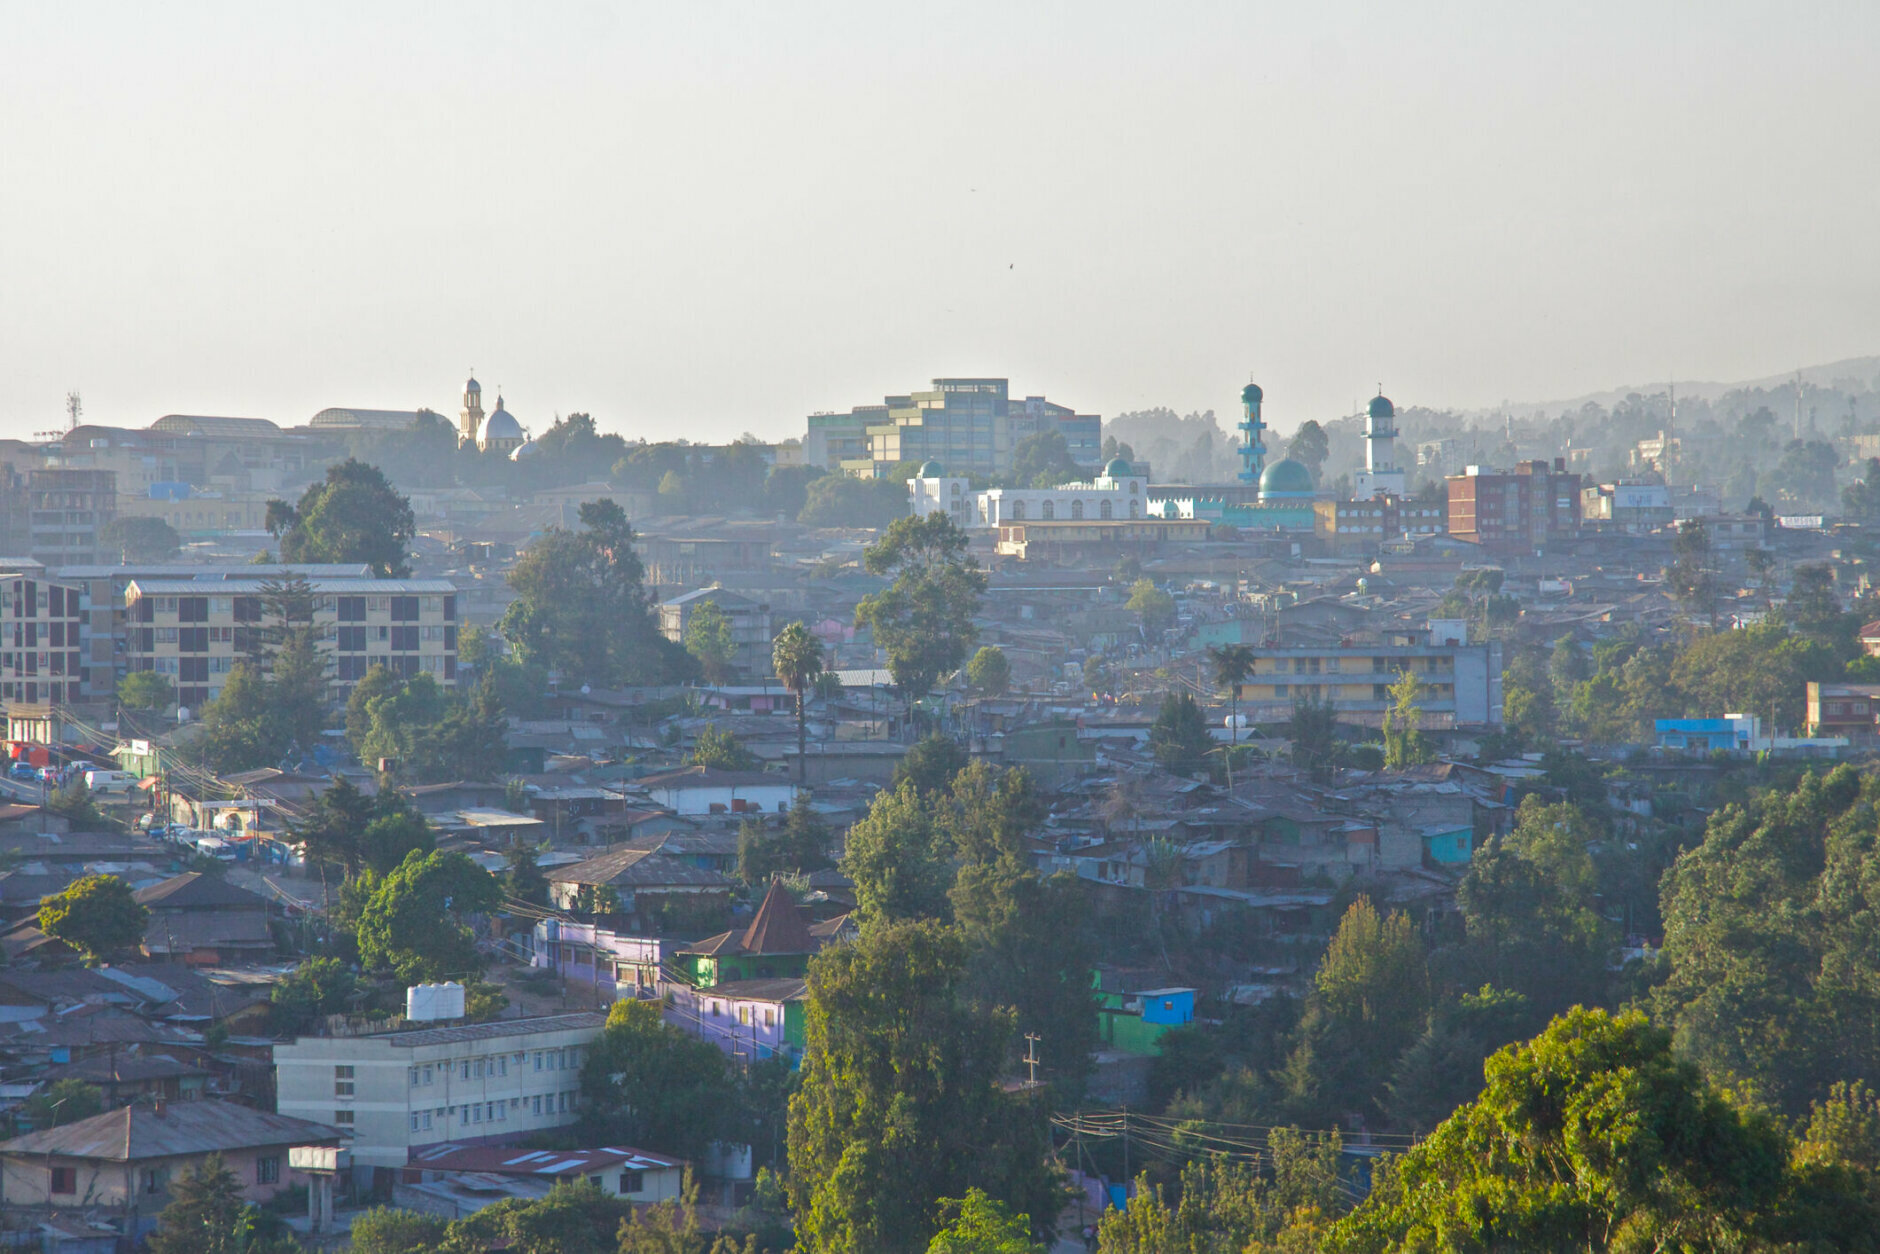 Cityscape of Addis Ababa with Anwar Mosque